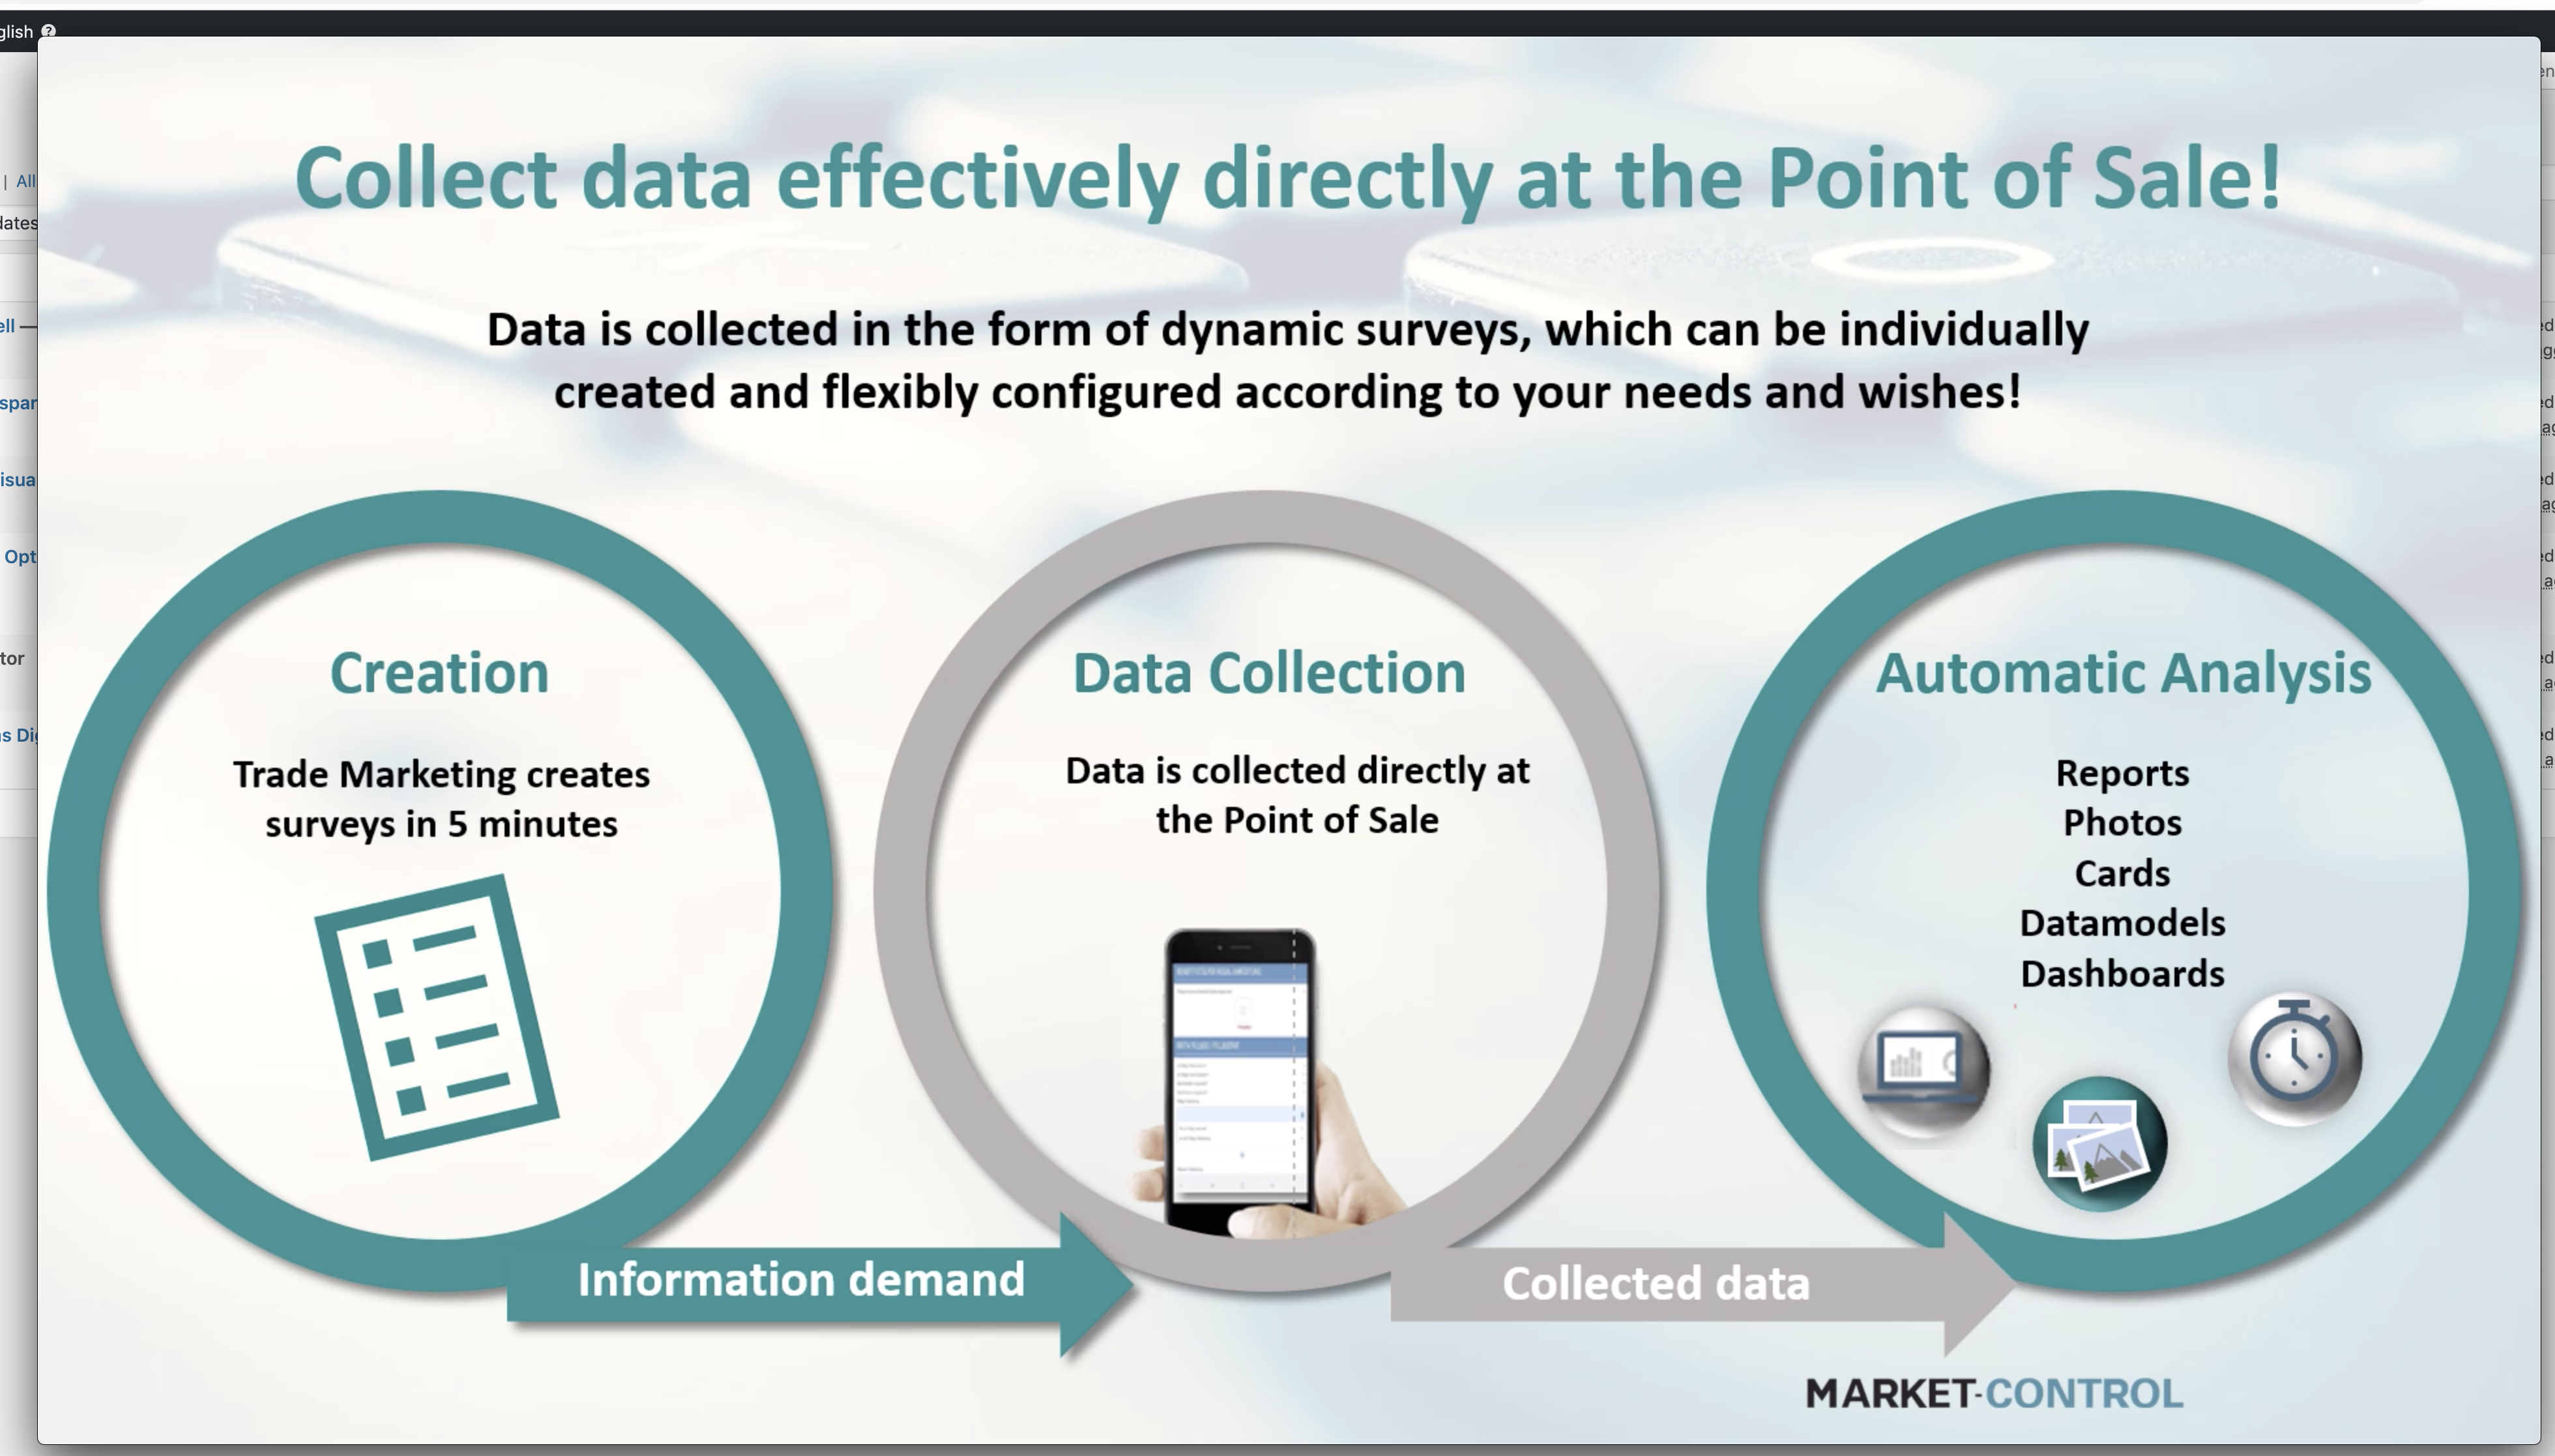 Collect data effectively directly at the point of sale!